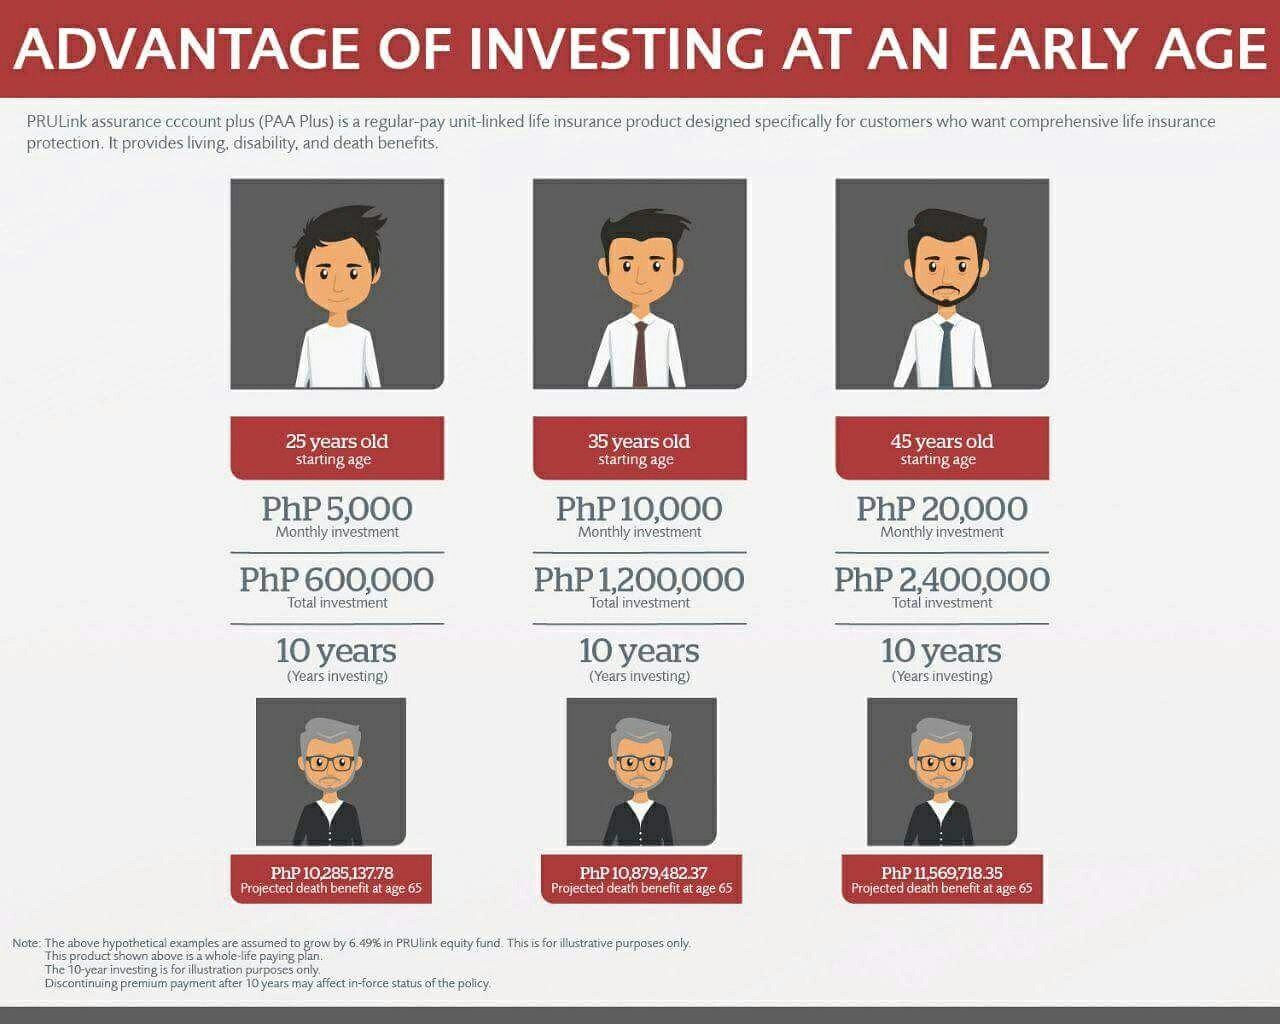 Investing early pays off. How? Through the power of ...